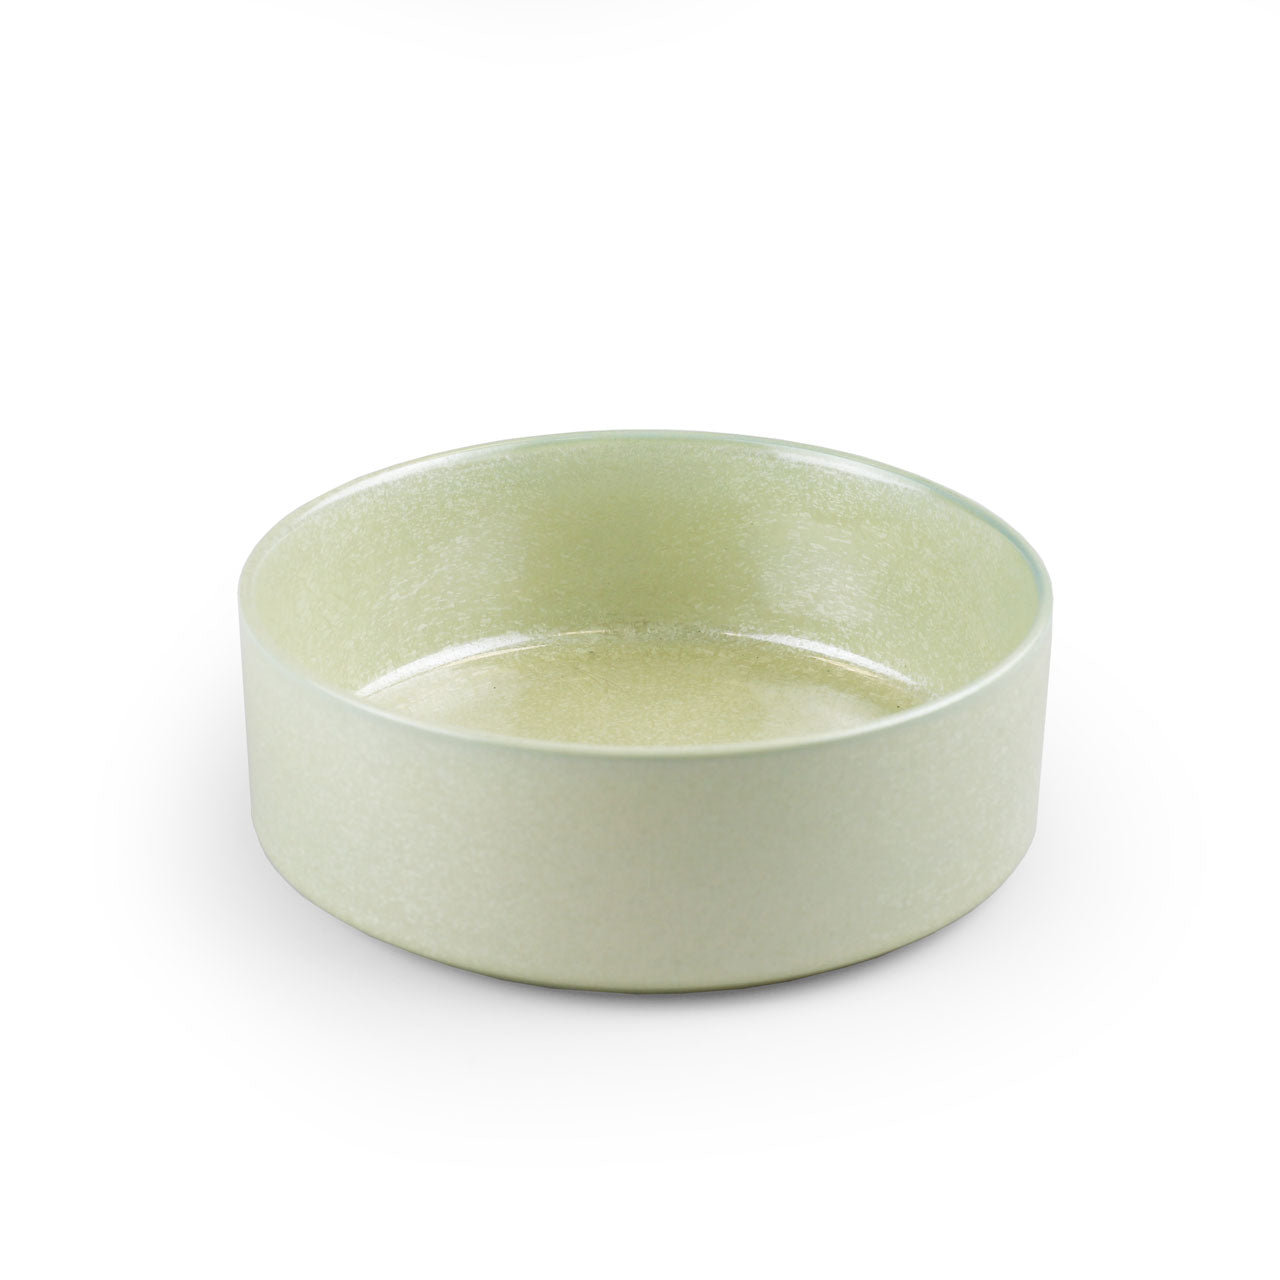 "Pale Green Stackable Bowl 29 fl oz / 6.3"" dia"